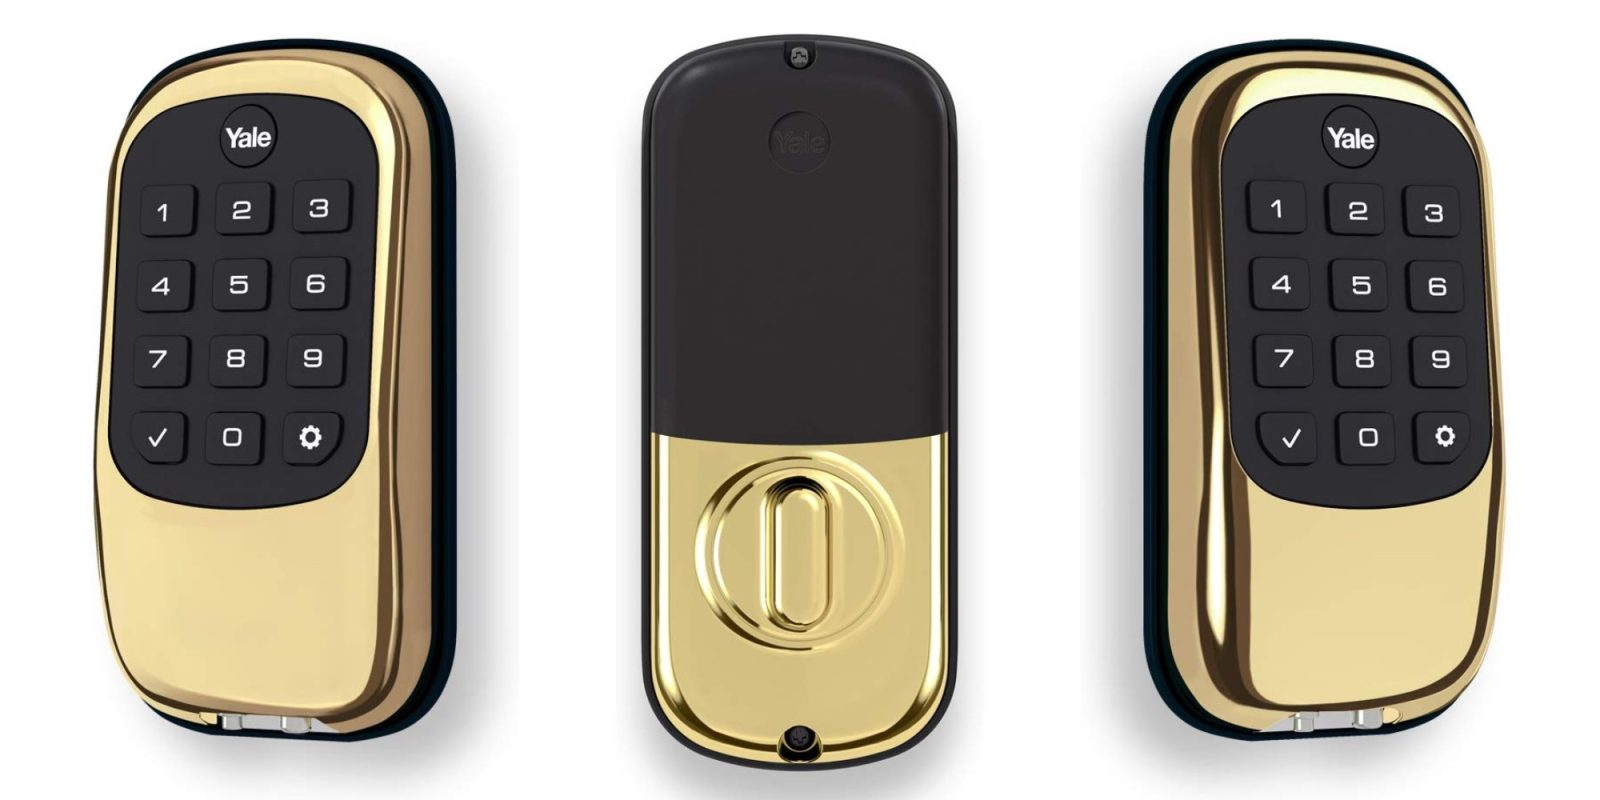 Arm your front door with Yale's Push Button Z-Wave Deadbolt: $103.50 (30% off)